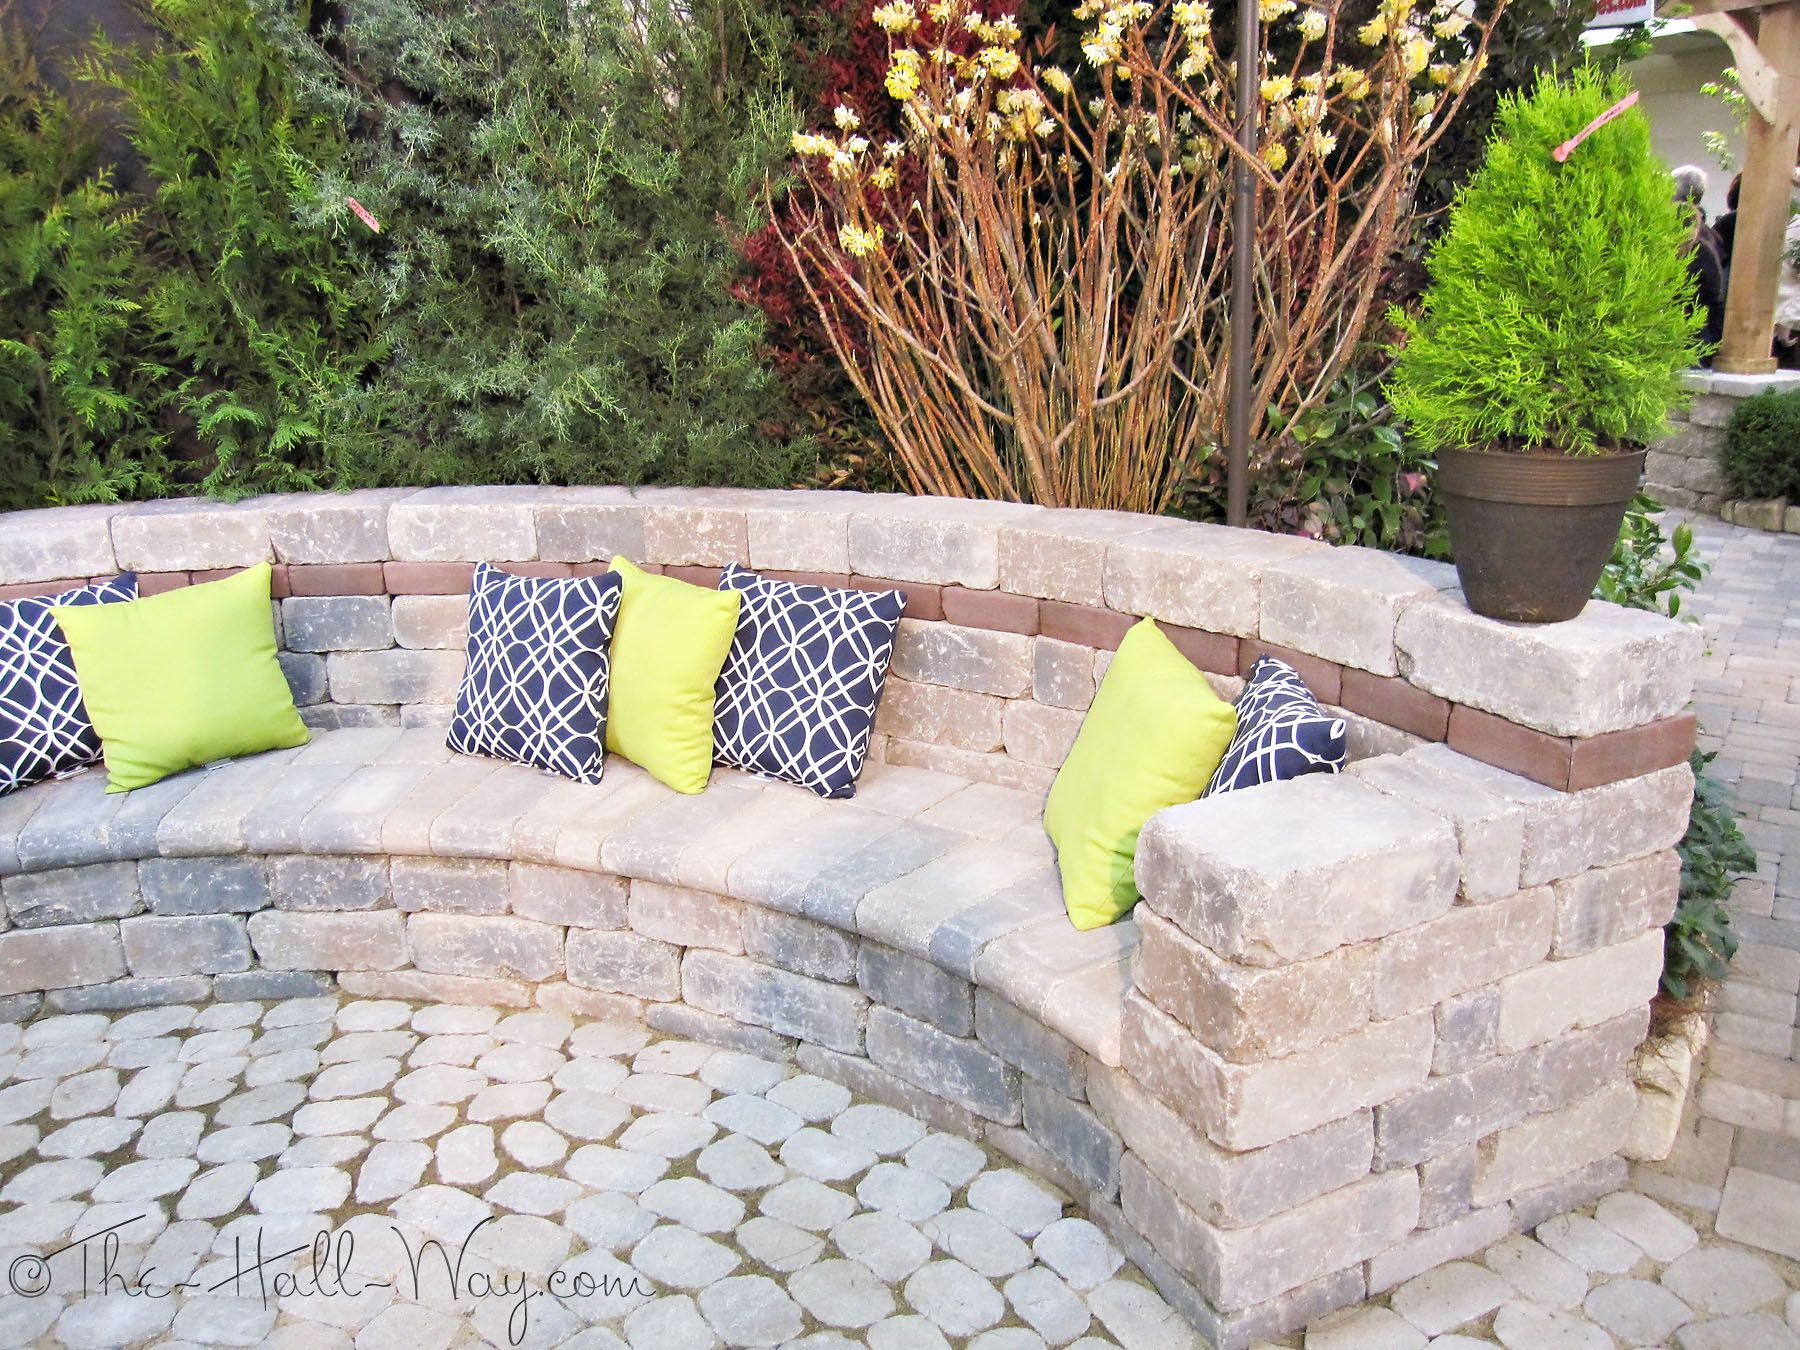 Peachy Outdoor Bench With Pavers Google Search Backyard Frankydiablos Diy Chair Ideas Frankydiabloscom